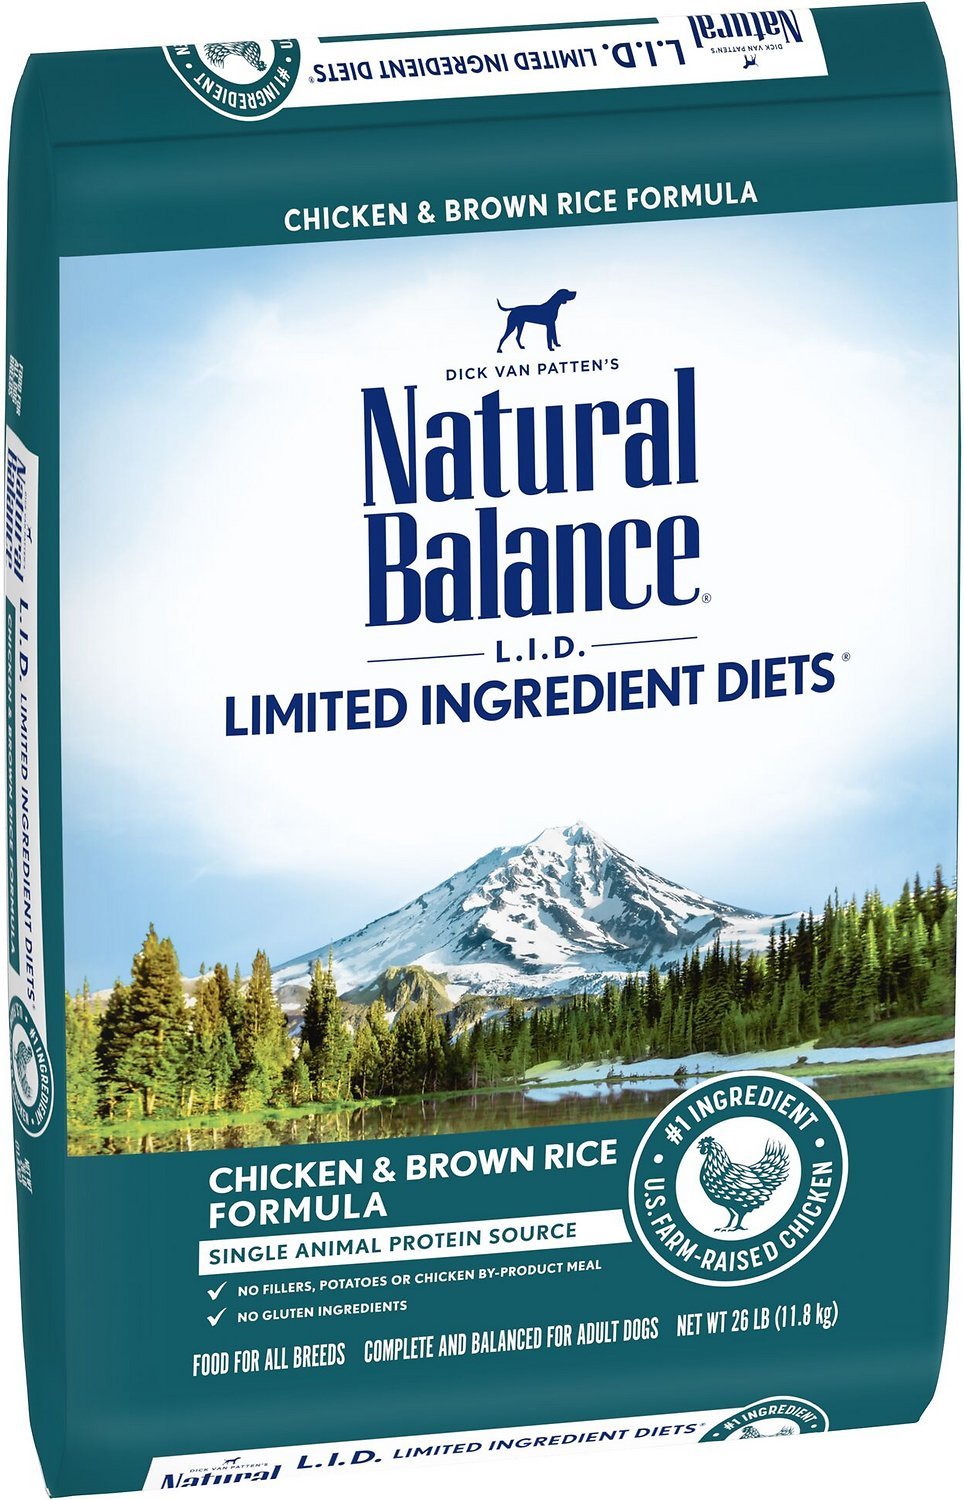 Natural Balance L.I.D. Limited Ingredient Diets Chicken & Brown Rice Formula Dry Dog Food, 26-lb